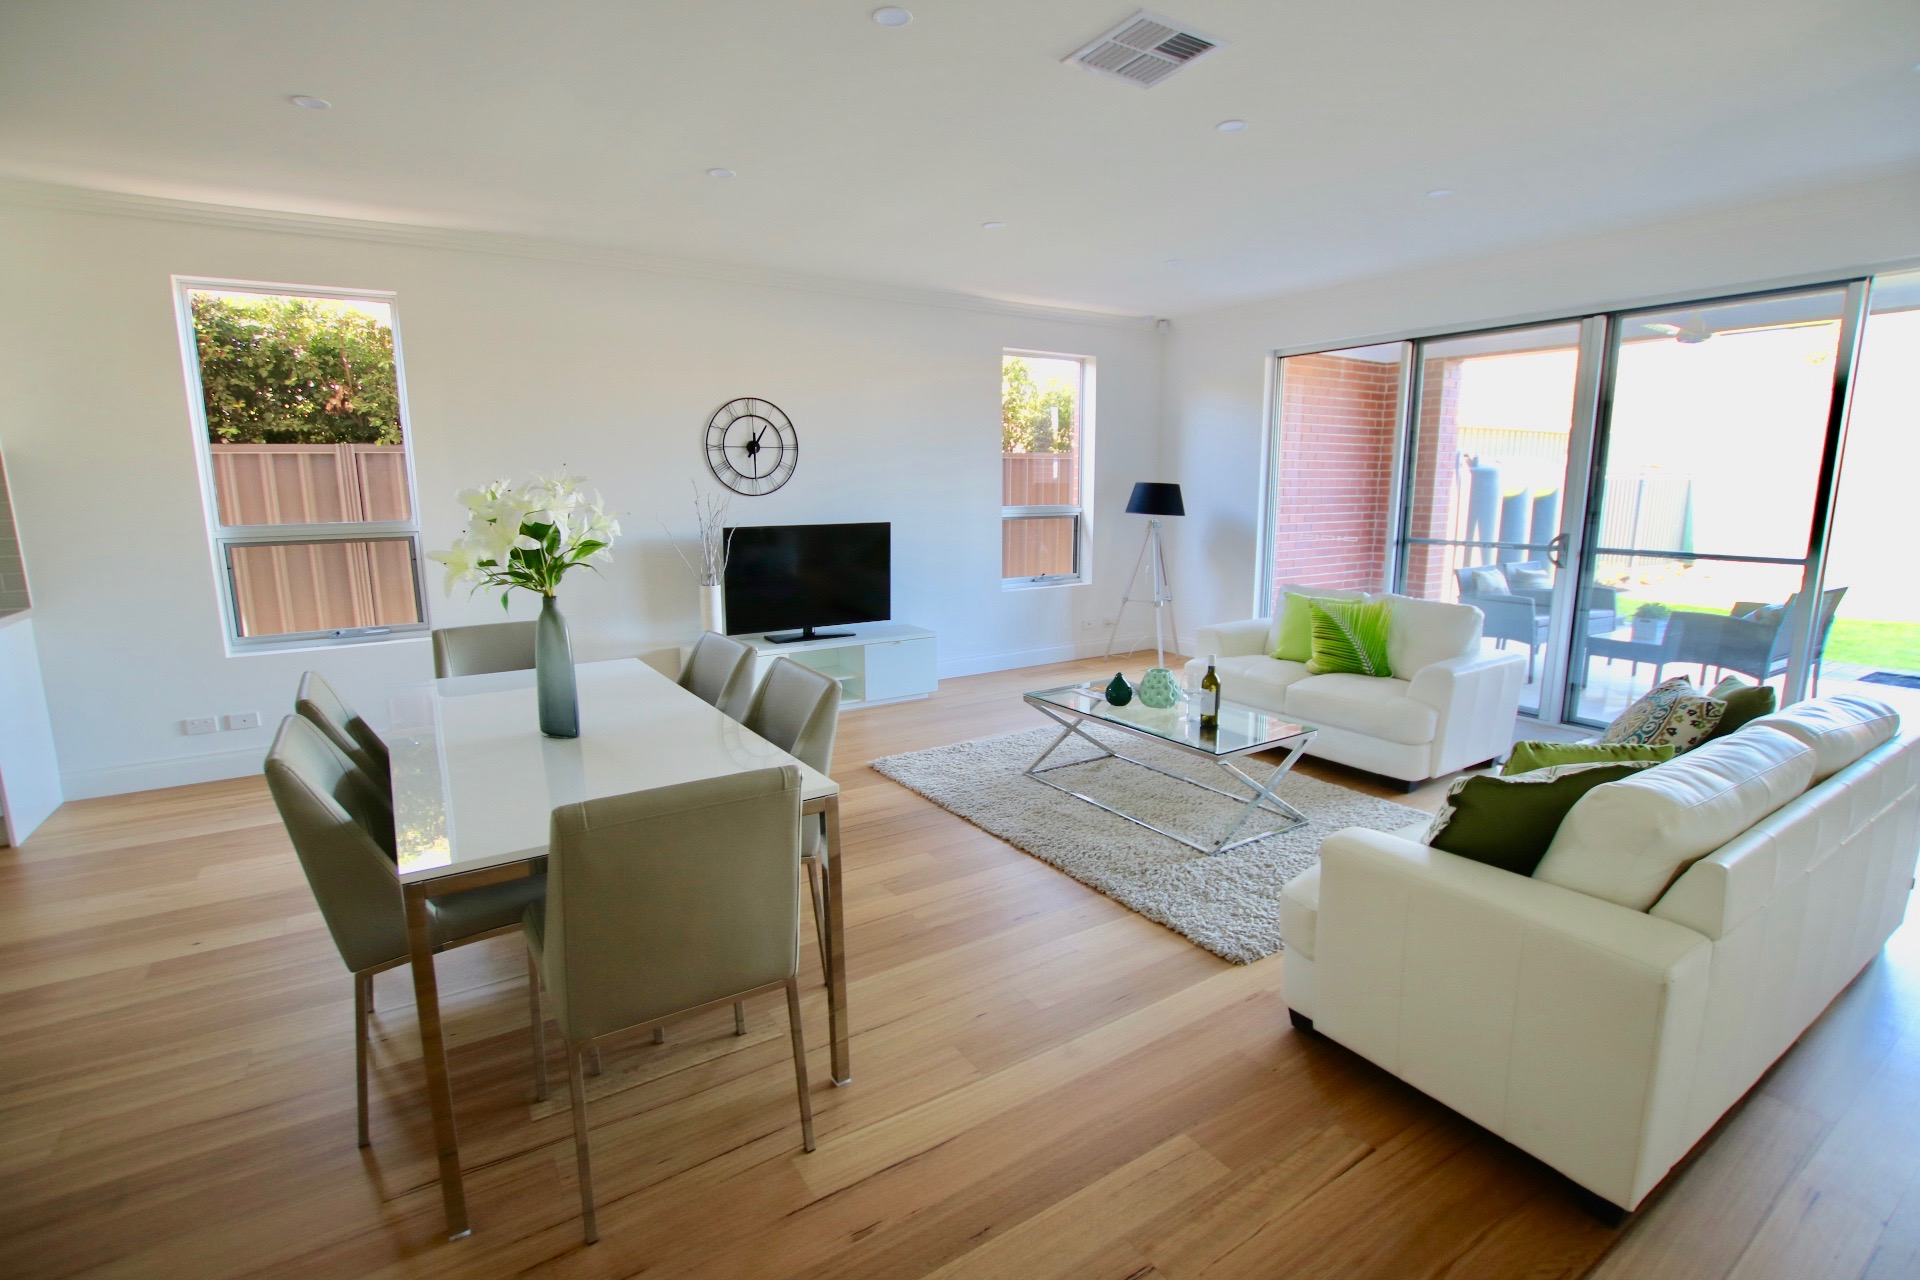 house-stage-furniture-living-room